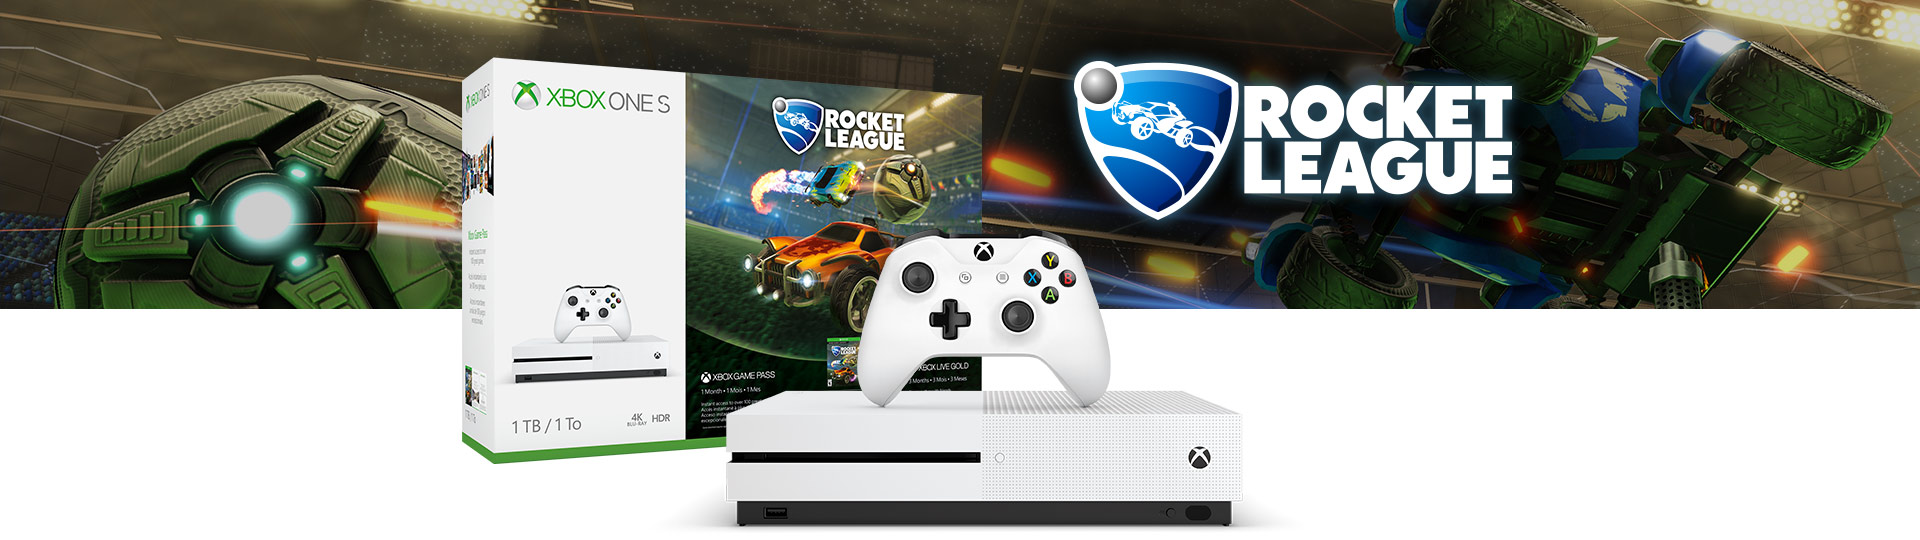 Xbox One S Rocket League Blast-Off-bundel 1 terrabyte